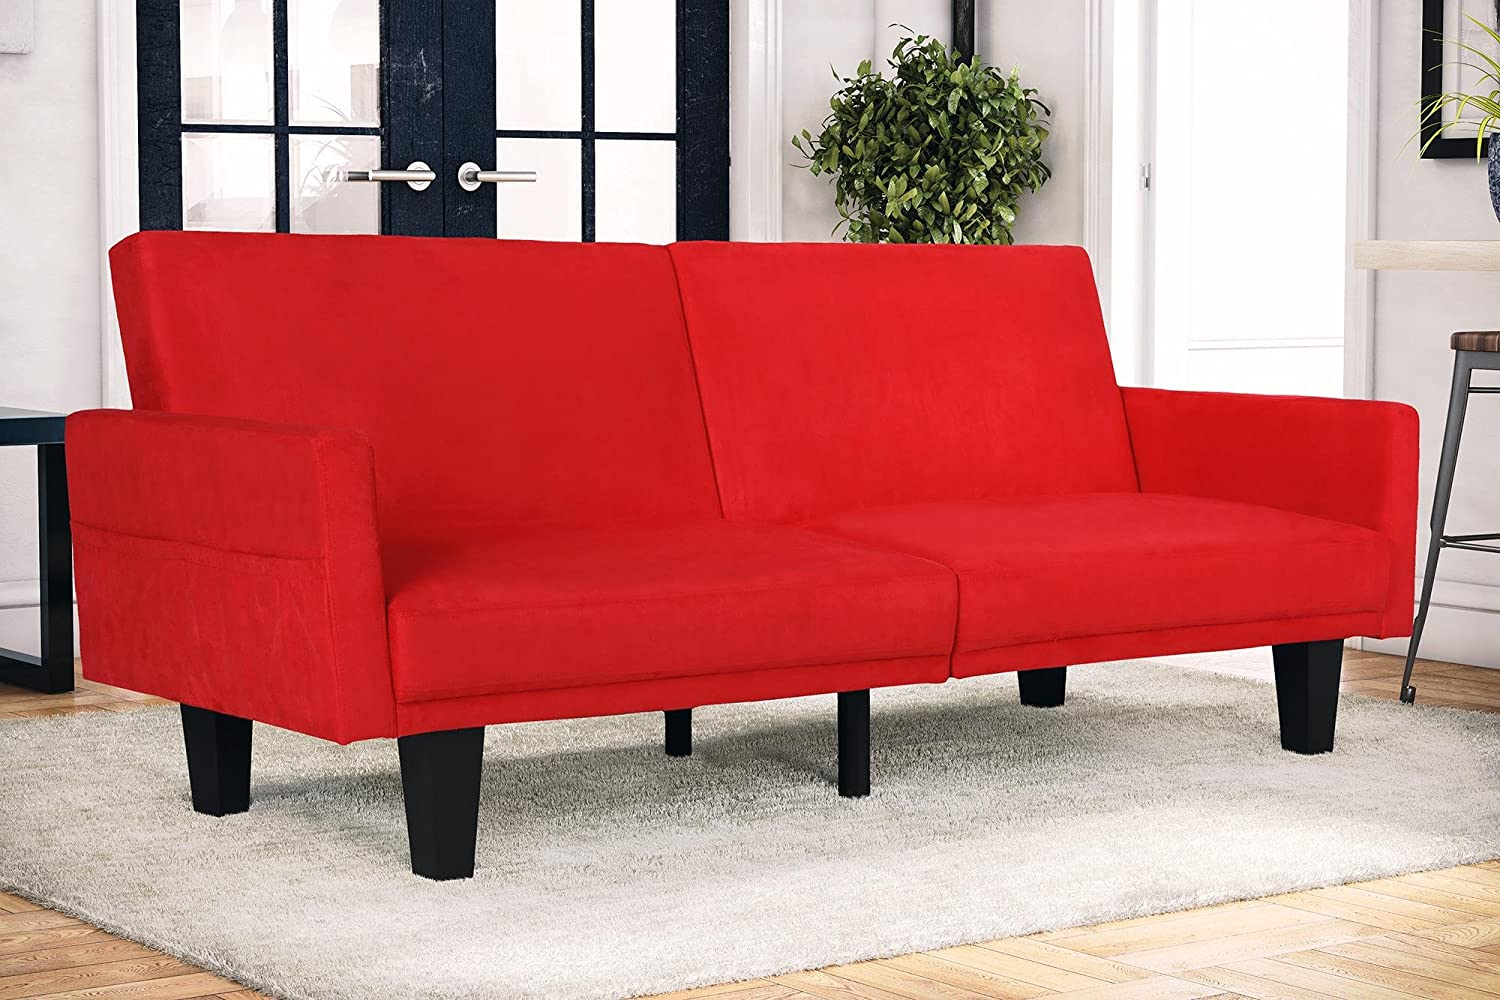 design futon red function leather and home southbaynorton black interior